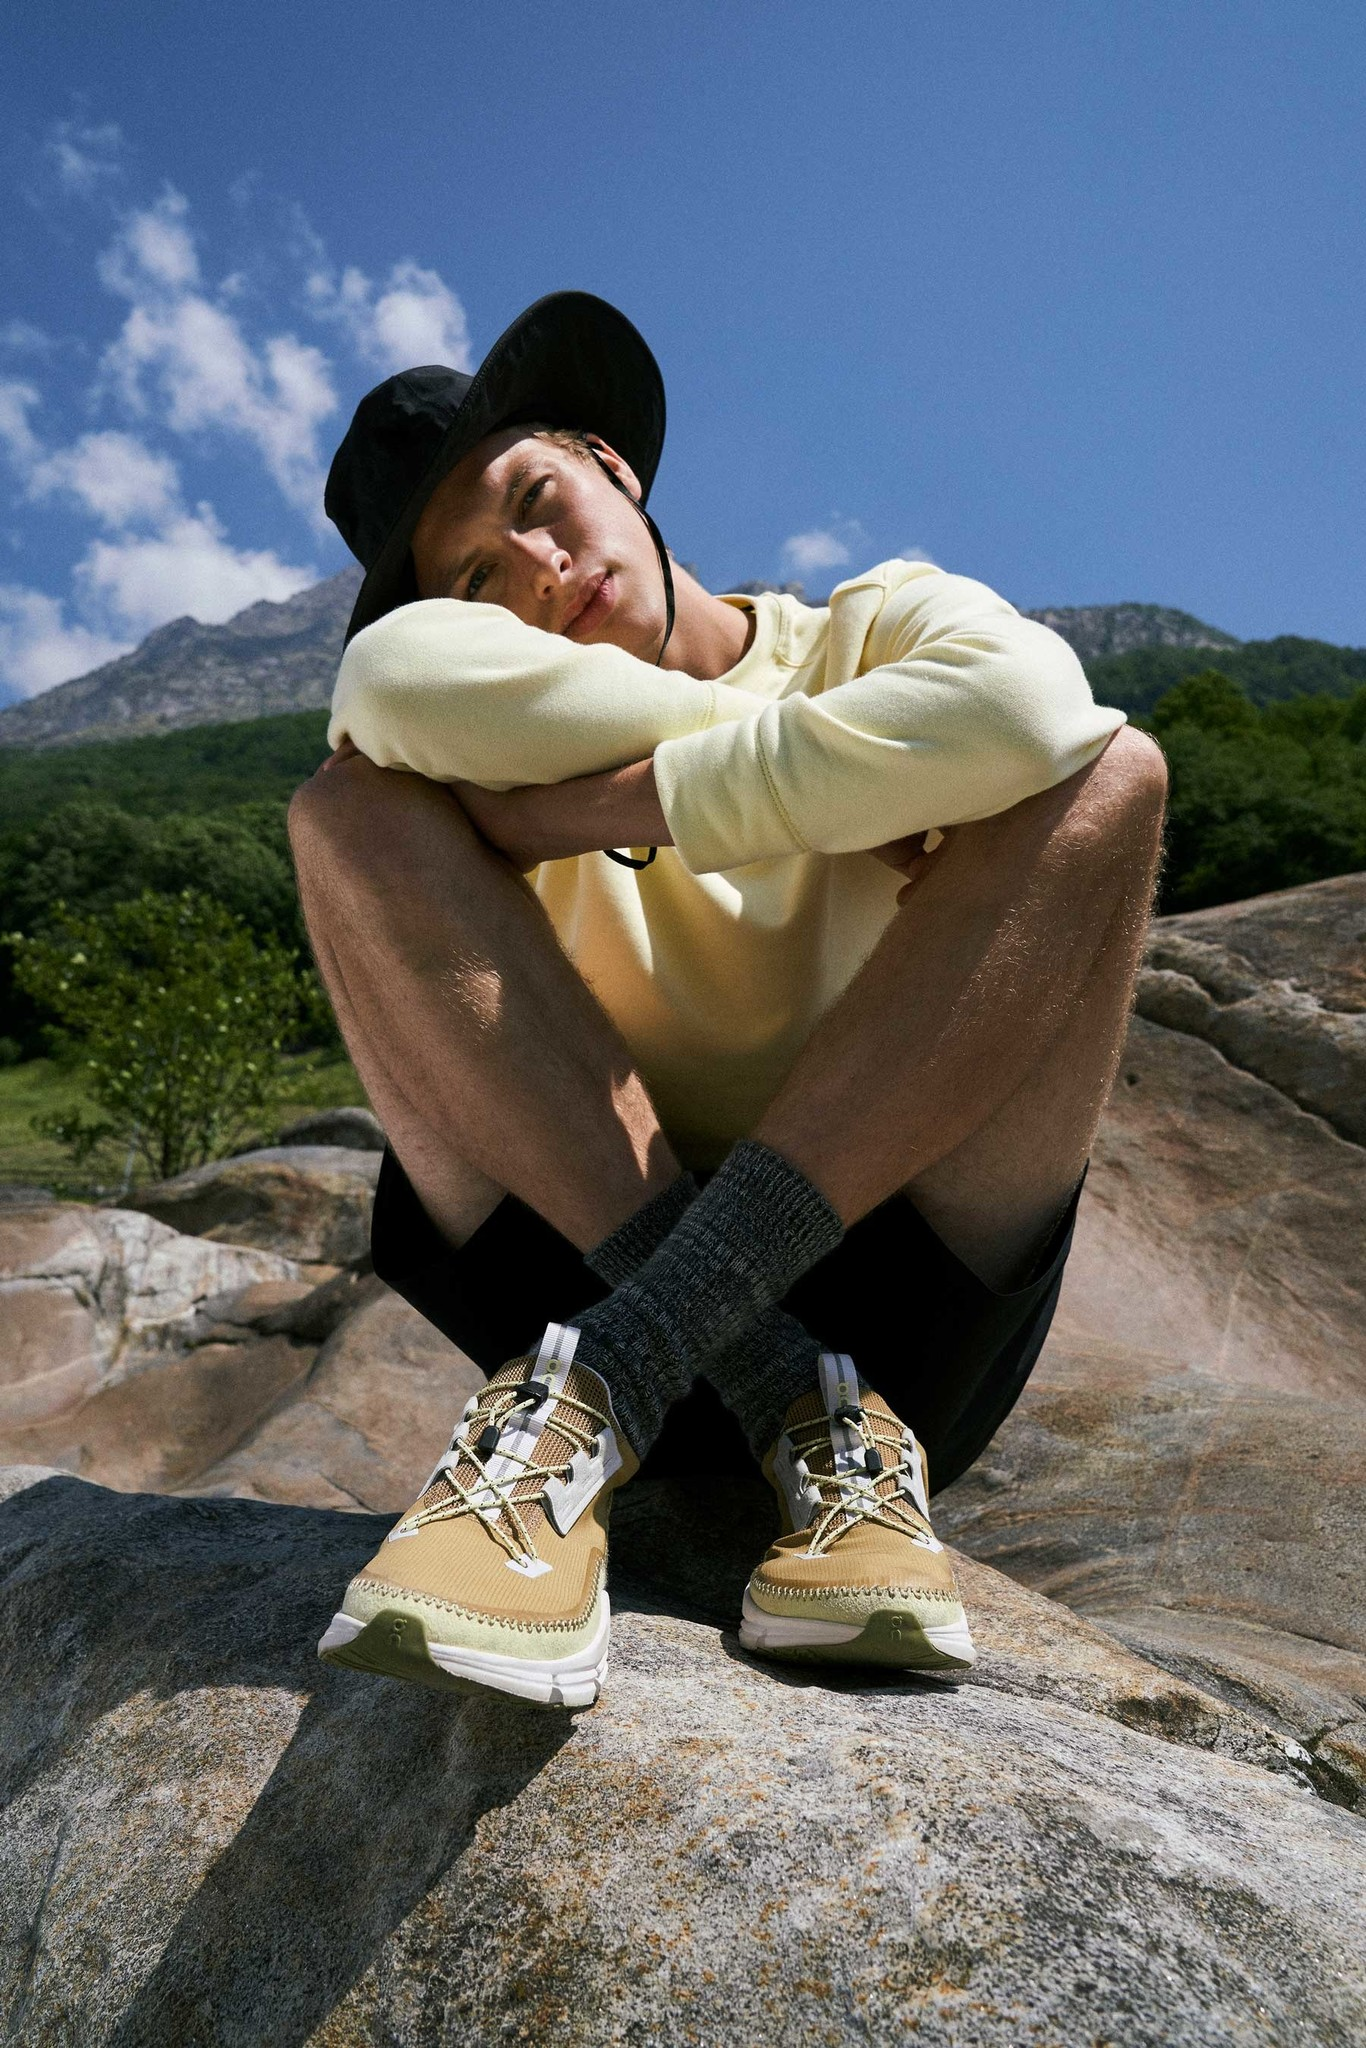 model poses on a rock